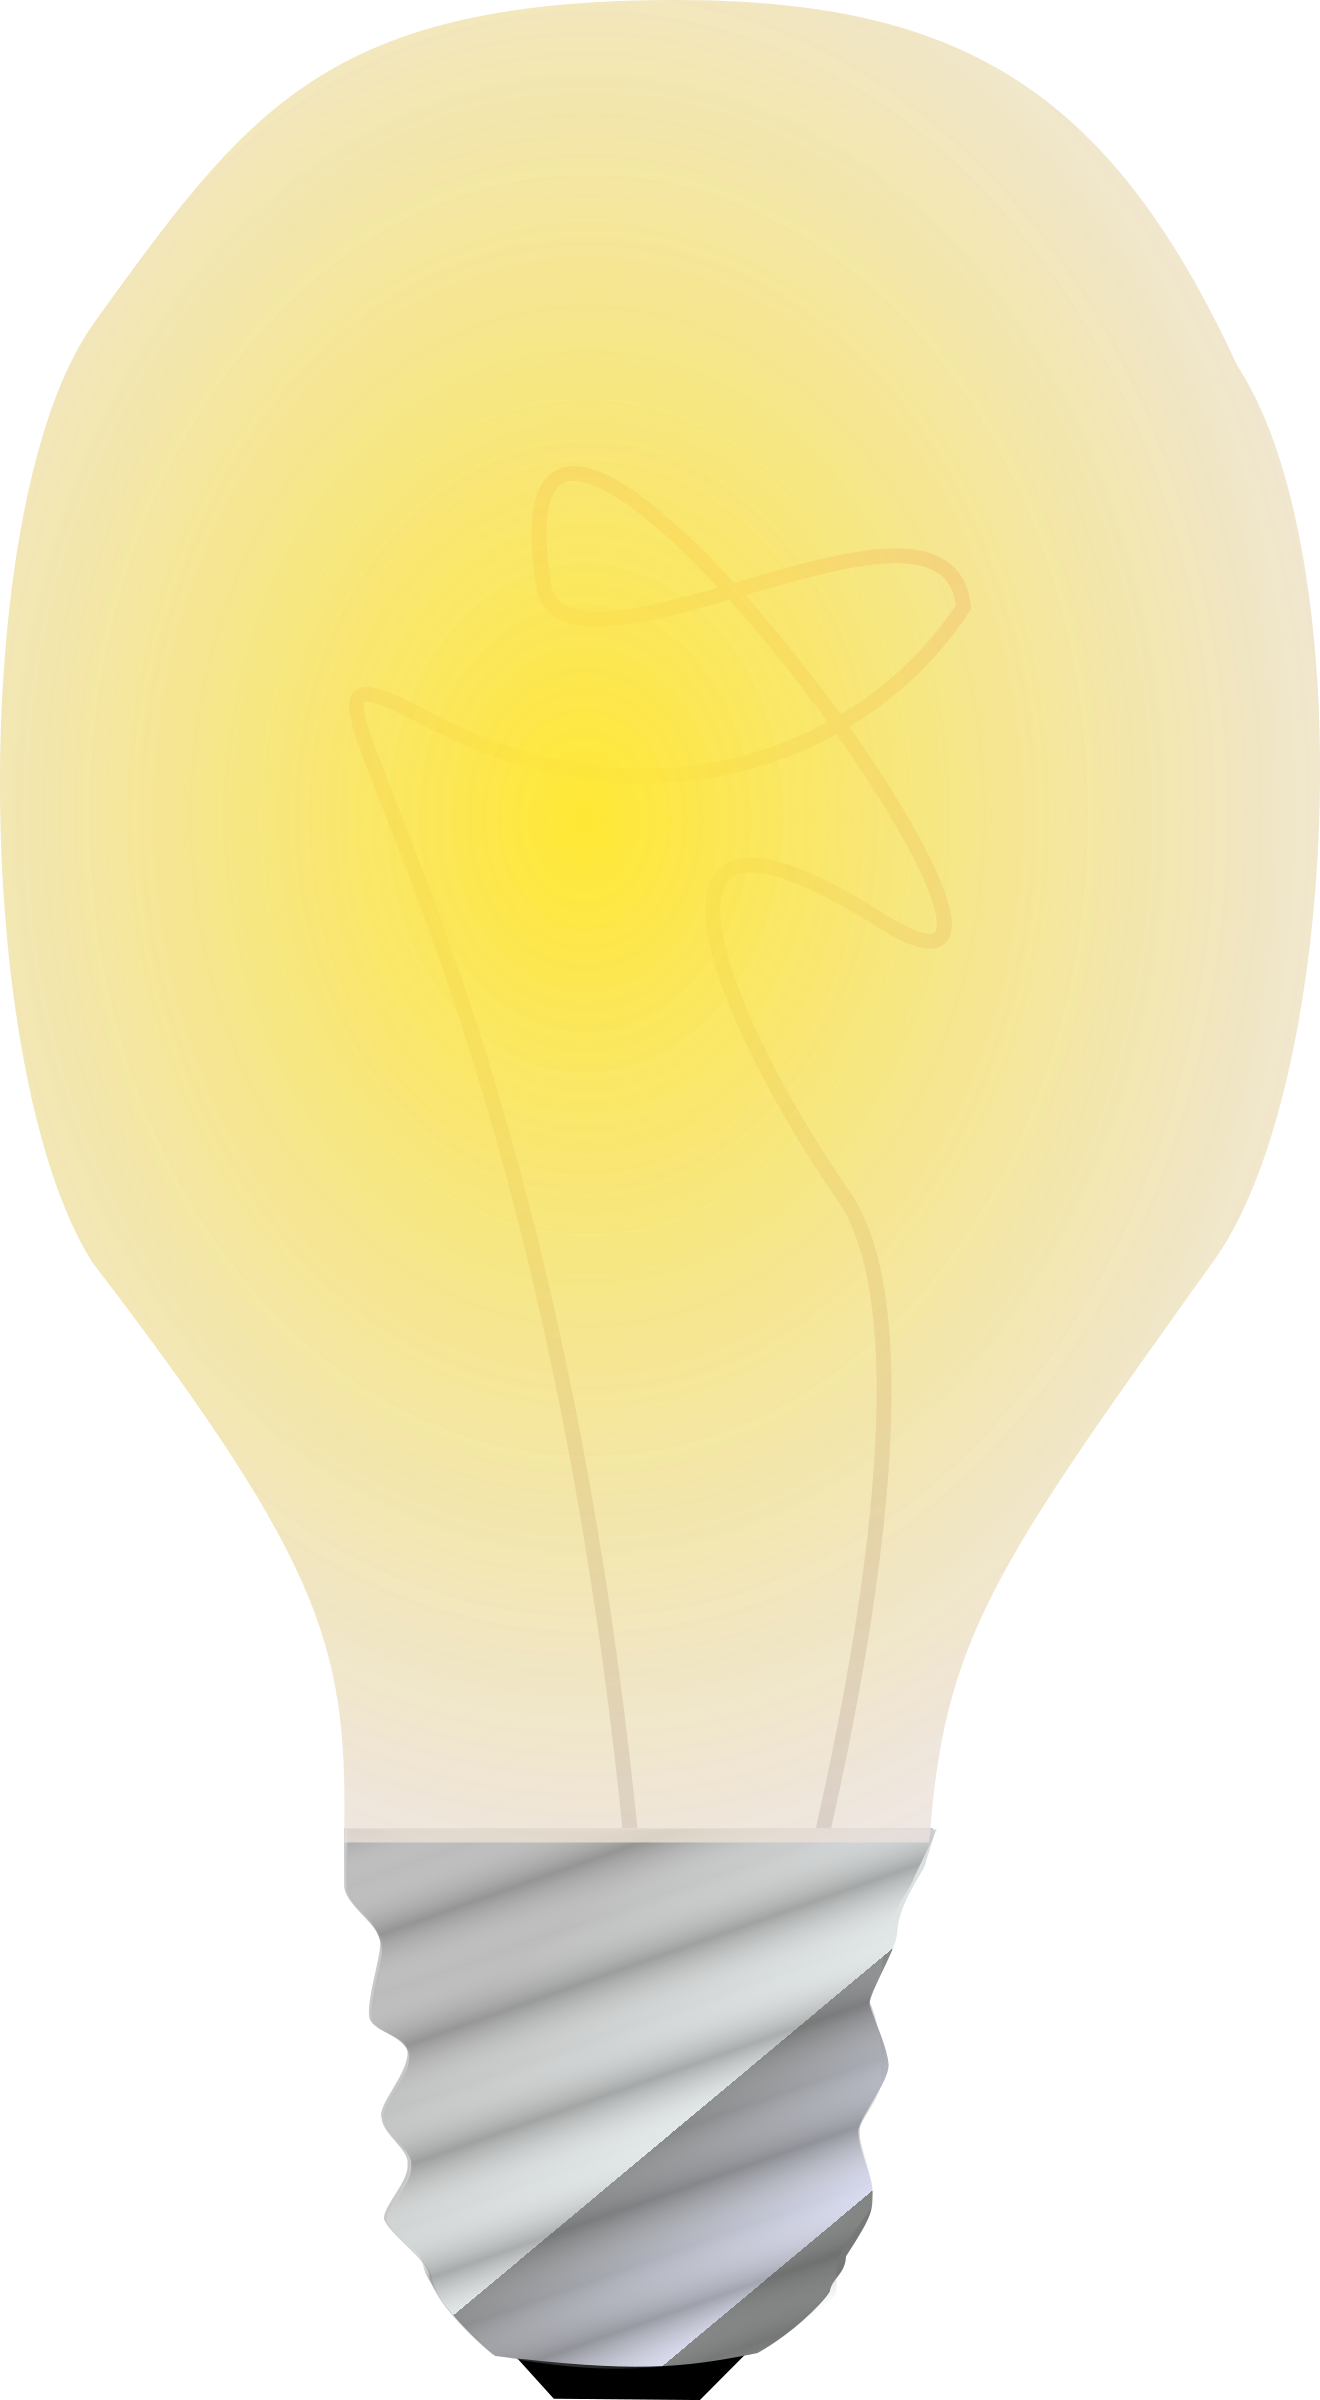 lightbulb on by Anonymous